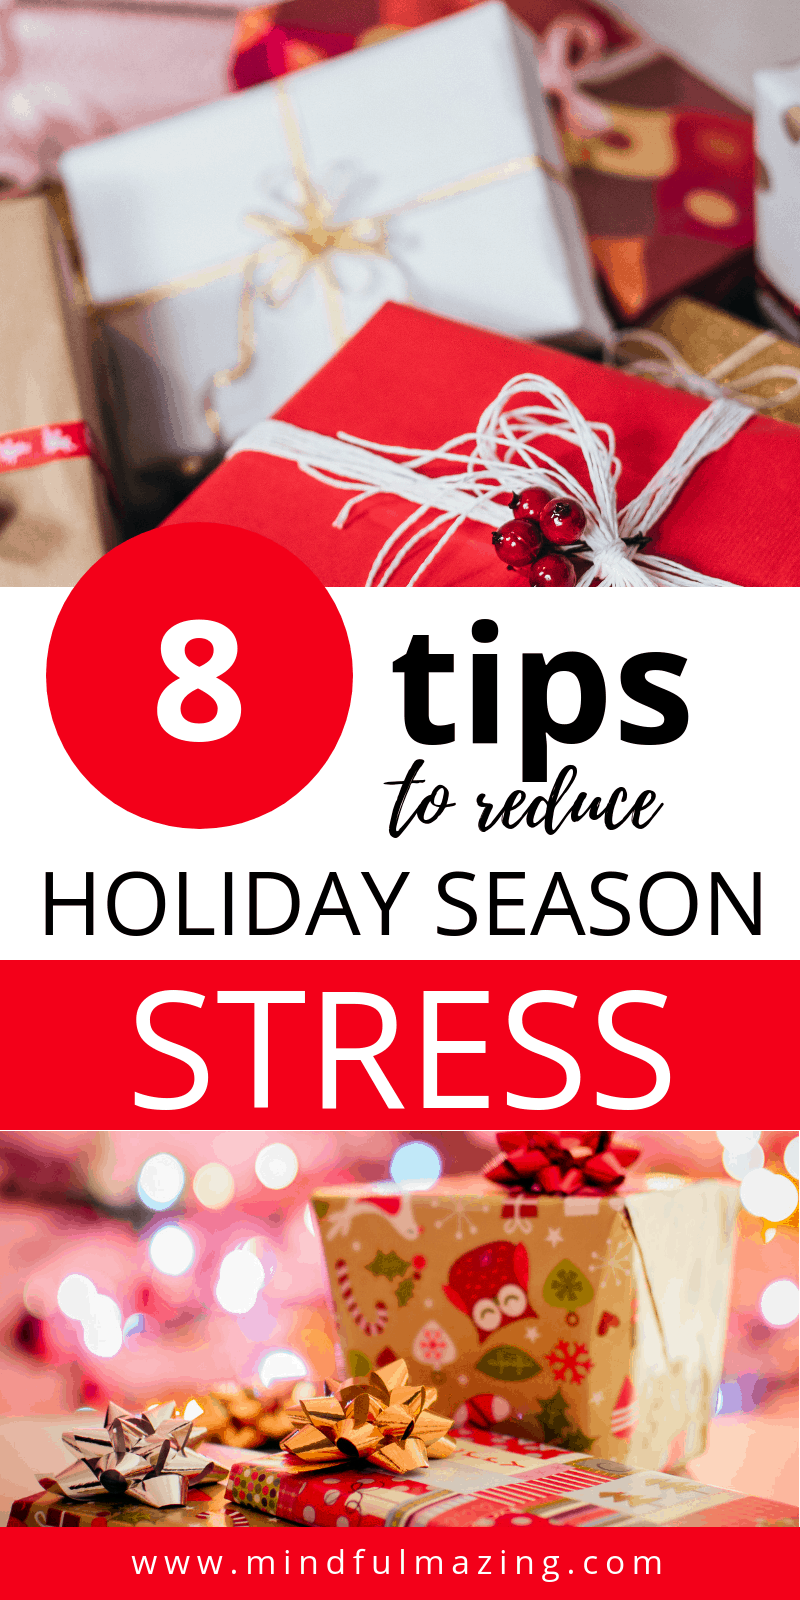 Reduce holiday season stress. The holiday season often brings a dizzying flurry of stress, tension and anxiety. And it's not surprising. The holidays bring increased demands — parties, shopping, debt, baking, cleaning, travelling - to name just a few. Learn 8 tips to stay sane during the holiday season.